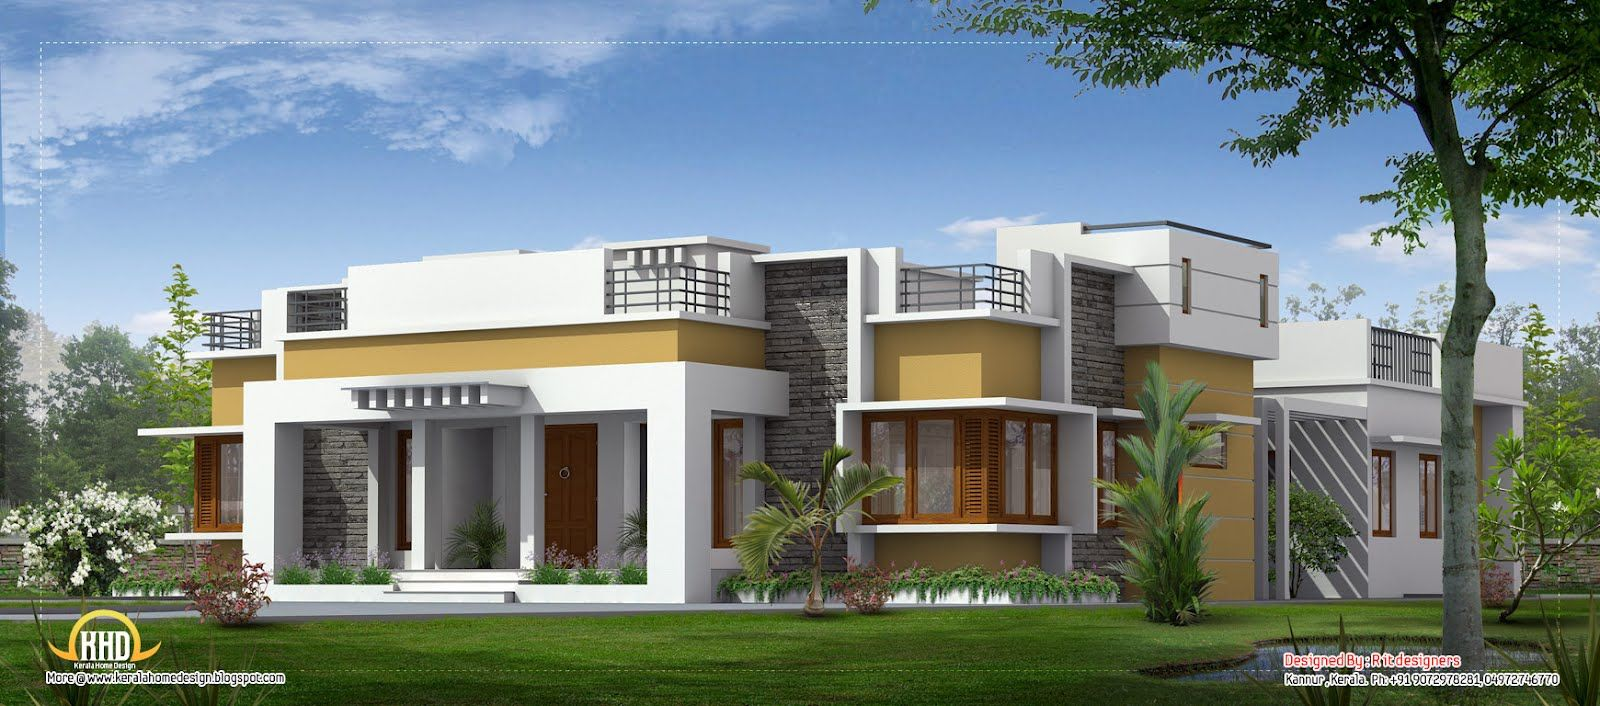 single level designer home single floor house plans - Designer Home Plans